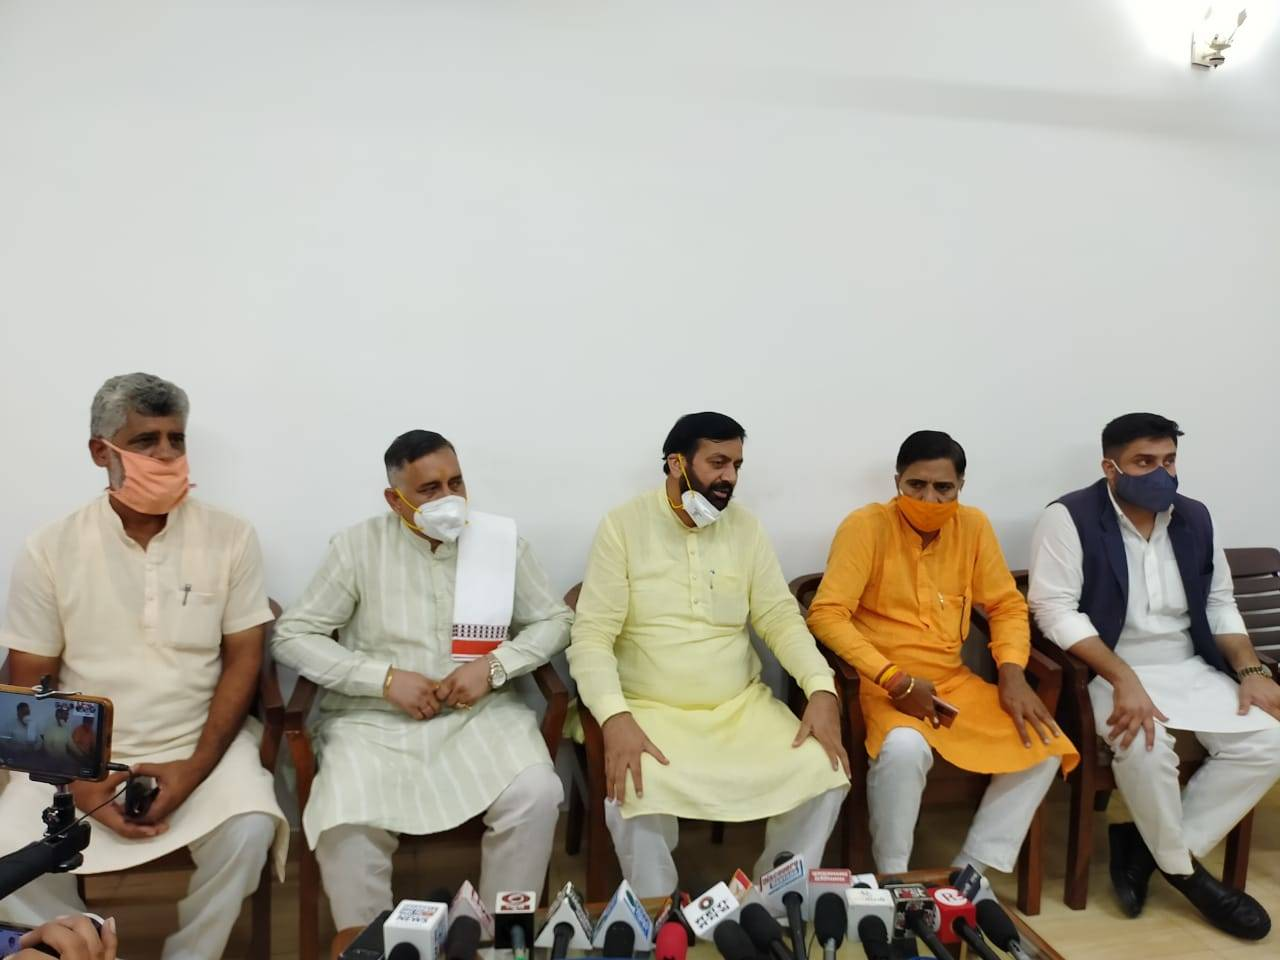 BJP leaders holding back to back pressers to set narratives in favour of Centre's agriculture laws, farmers not pacified